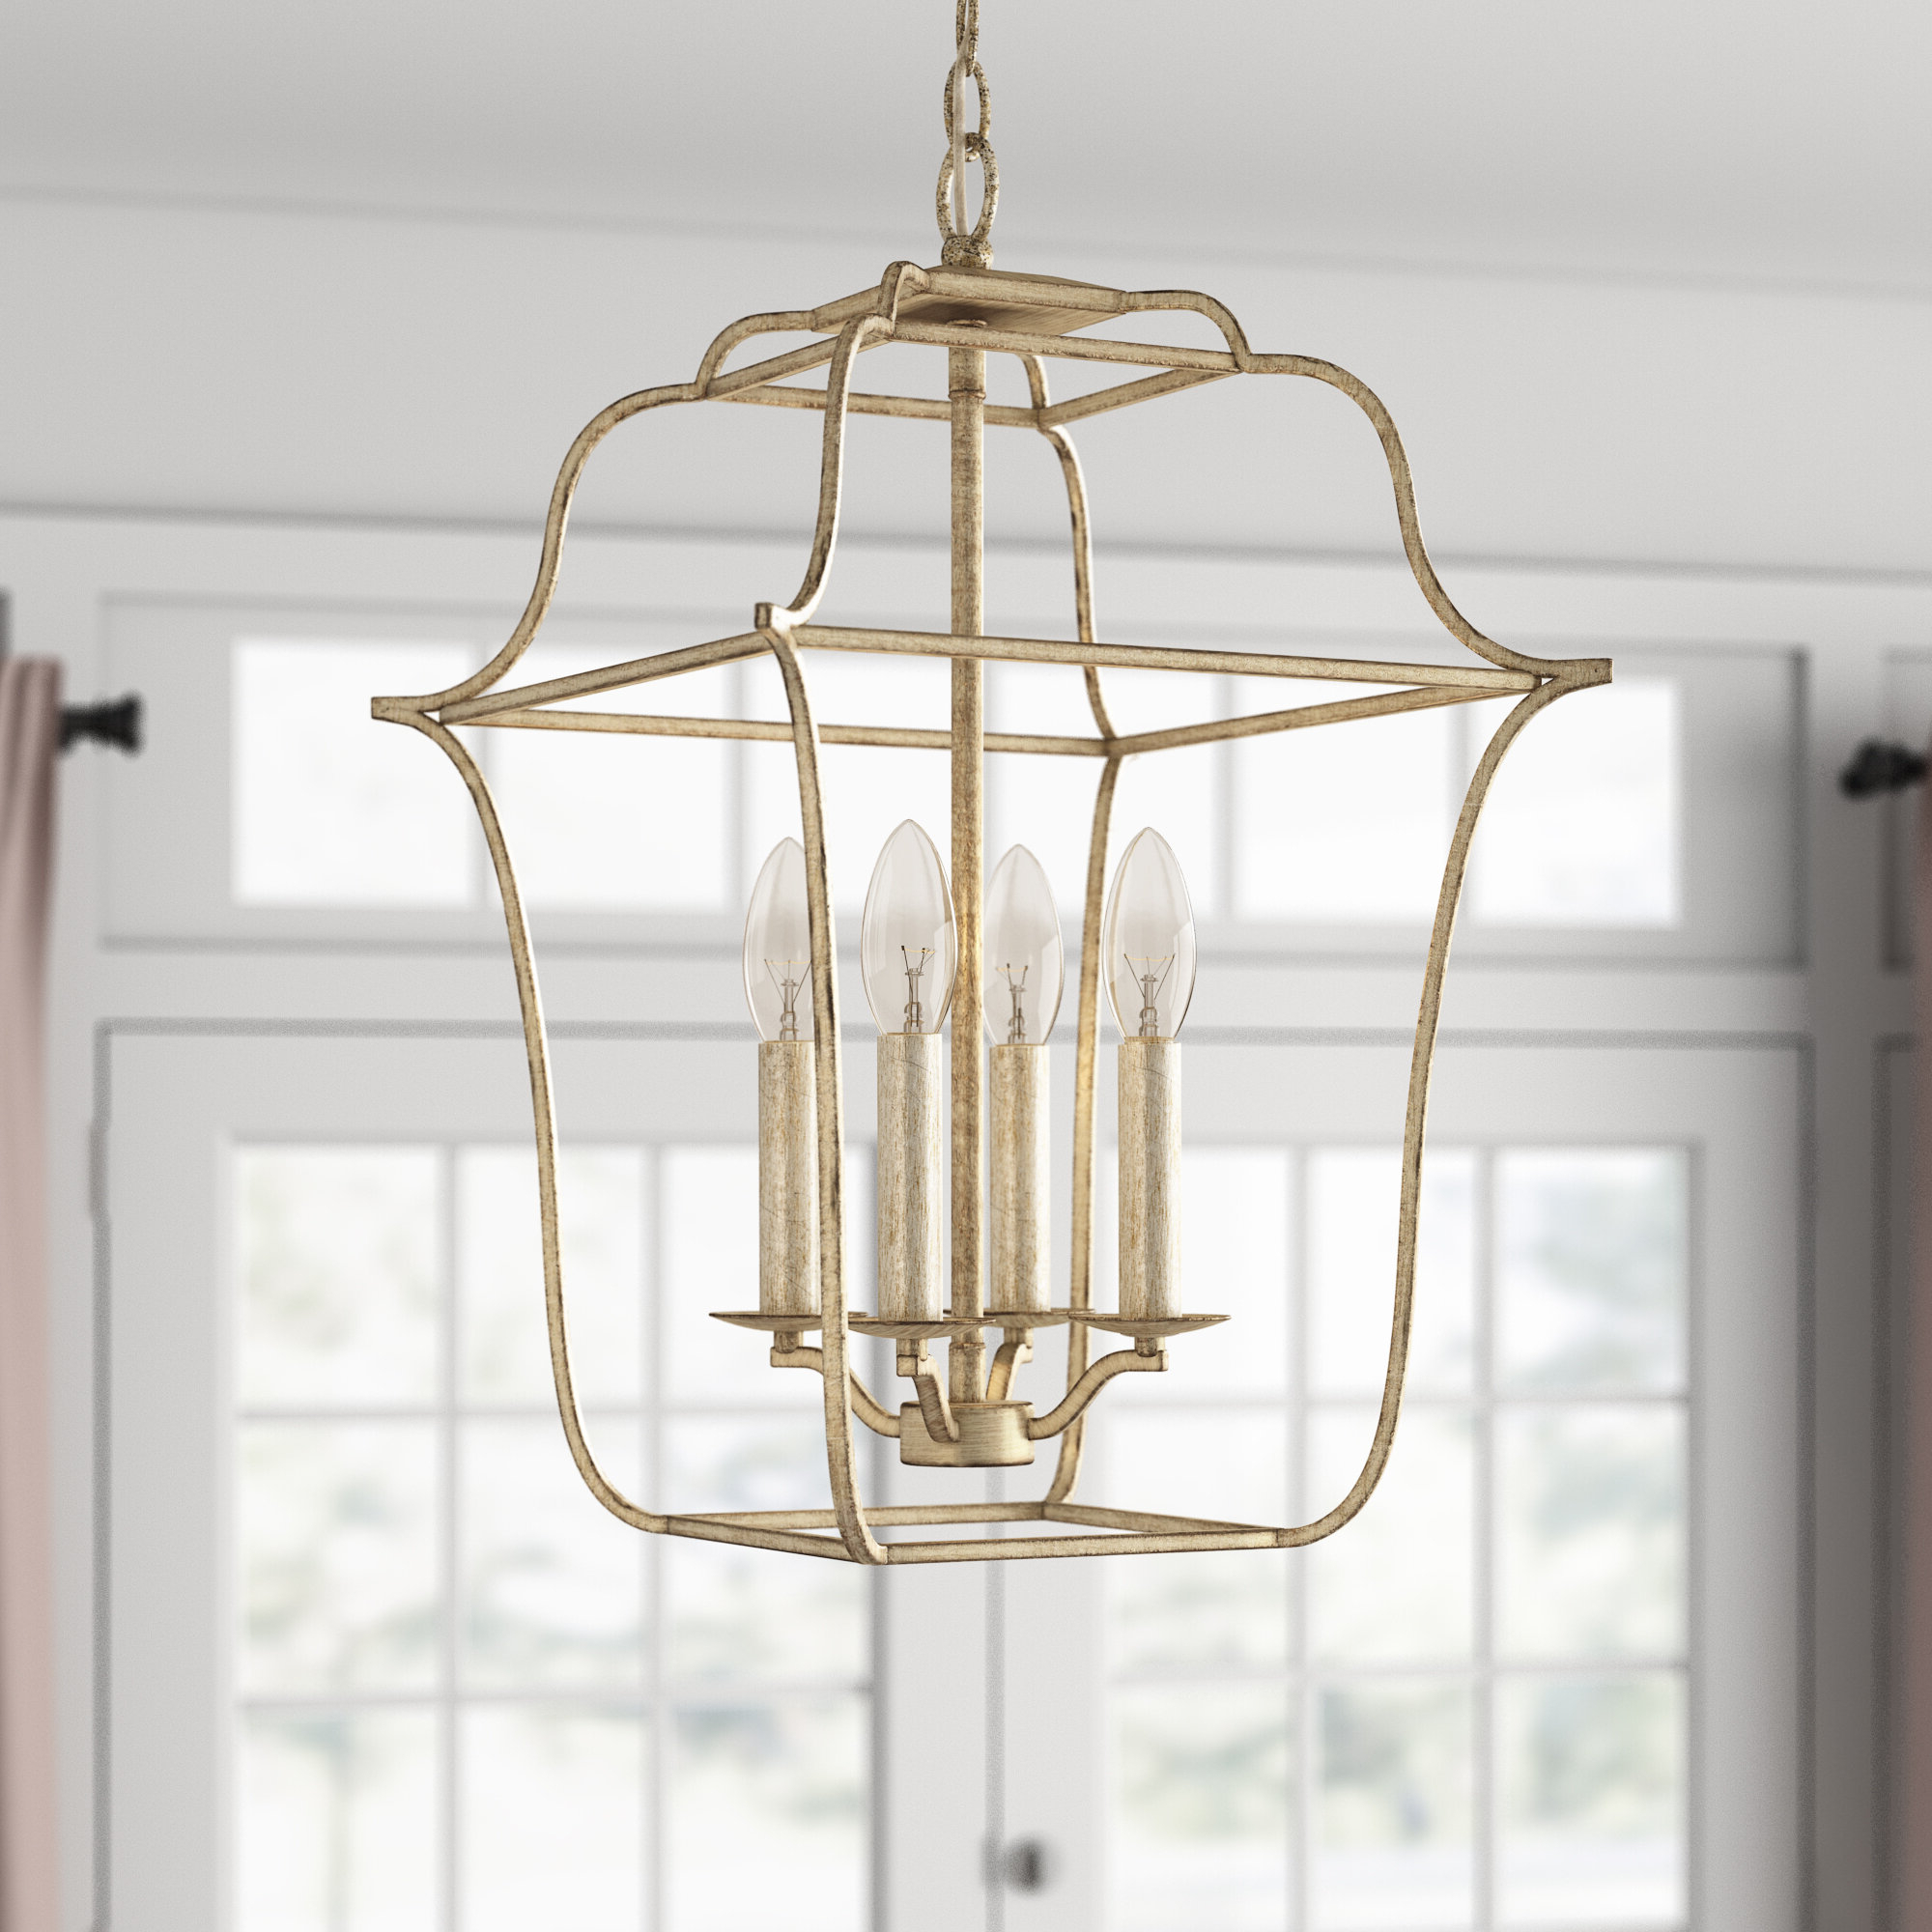 Chloe 4 Light Lantern Geometric Pendant Pertaining To Most Popular Taya 4 Light Lantern Square Pendants (View 5 of 20)